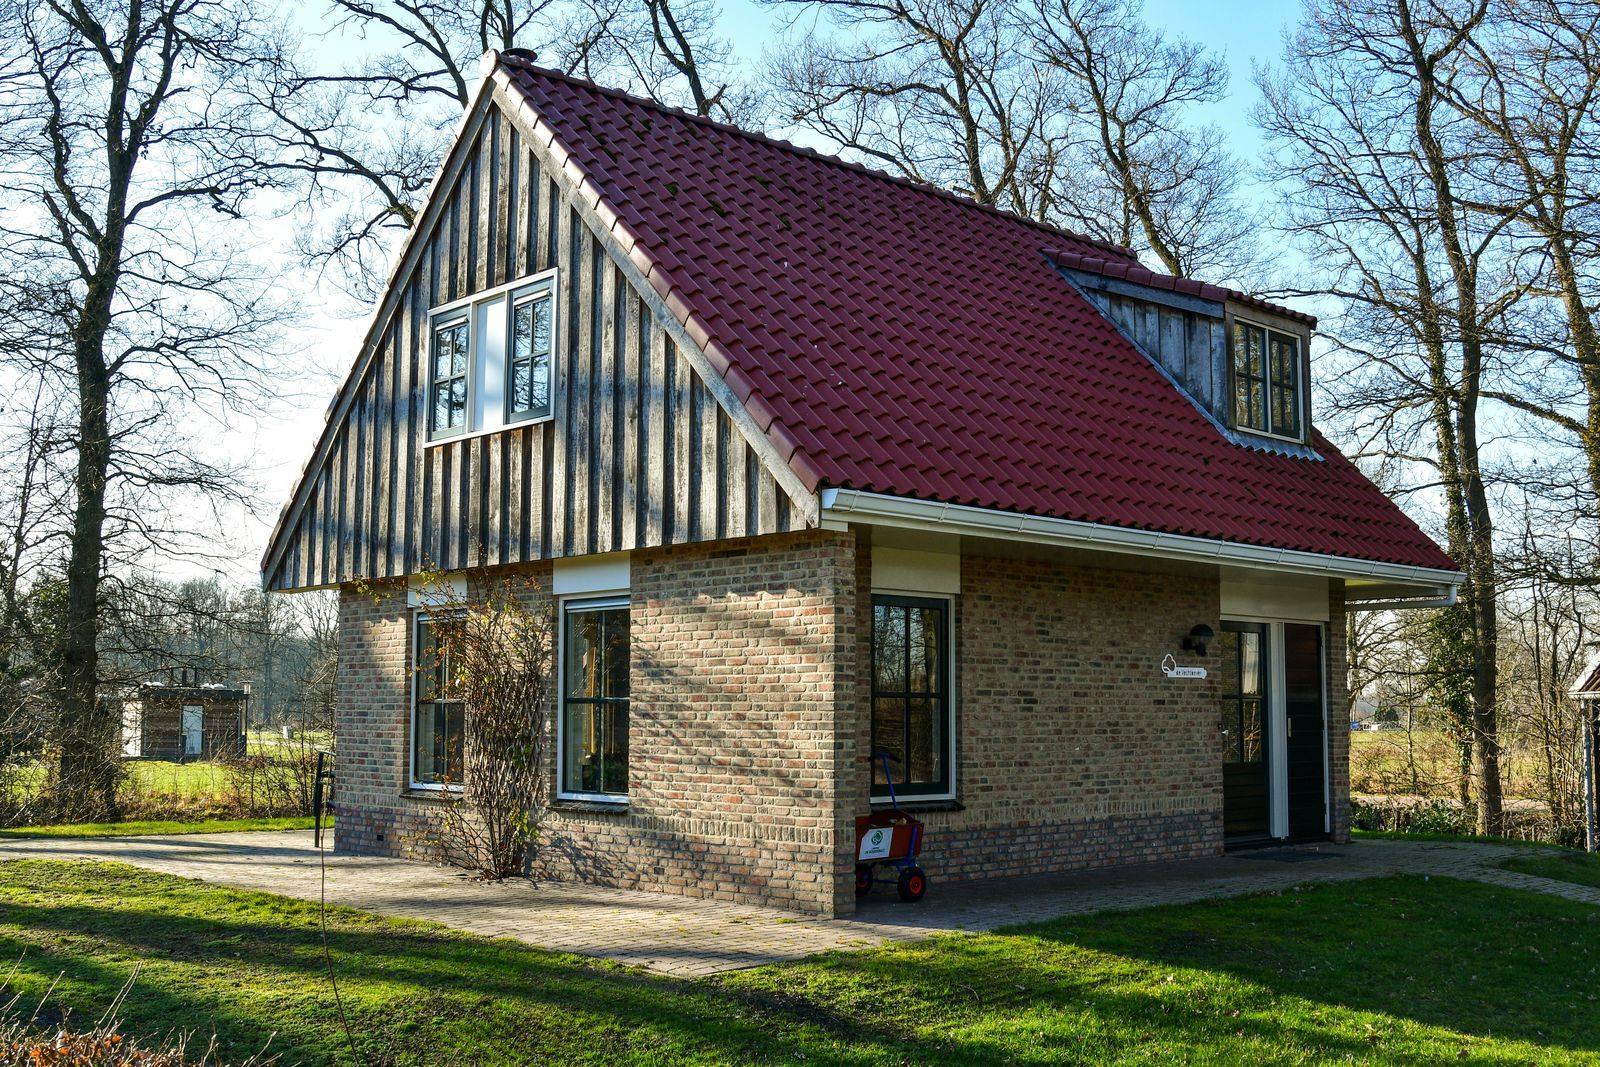 Vechtoever Bungalow (5 people)